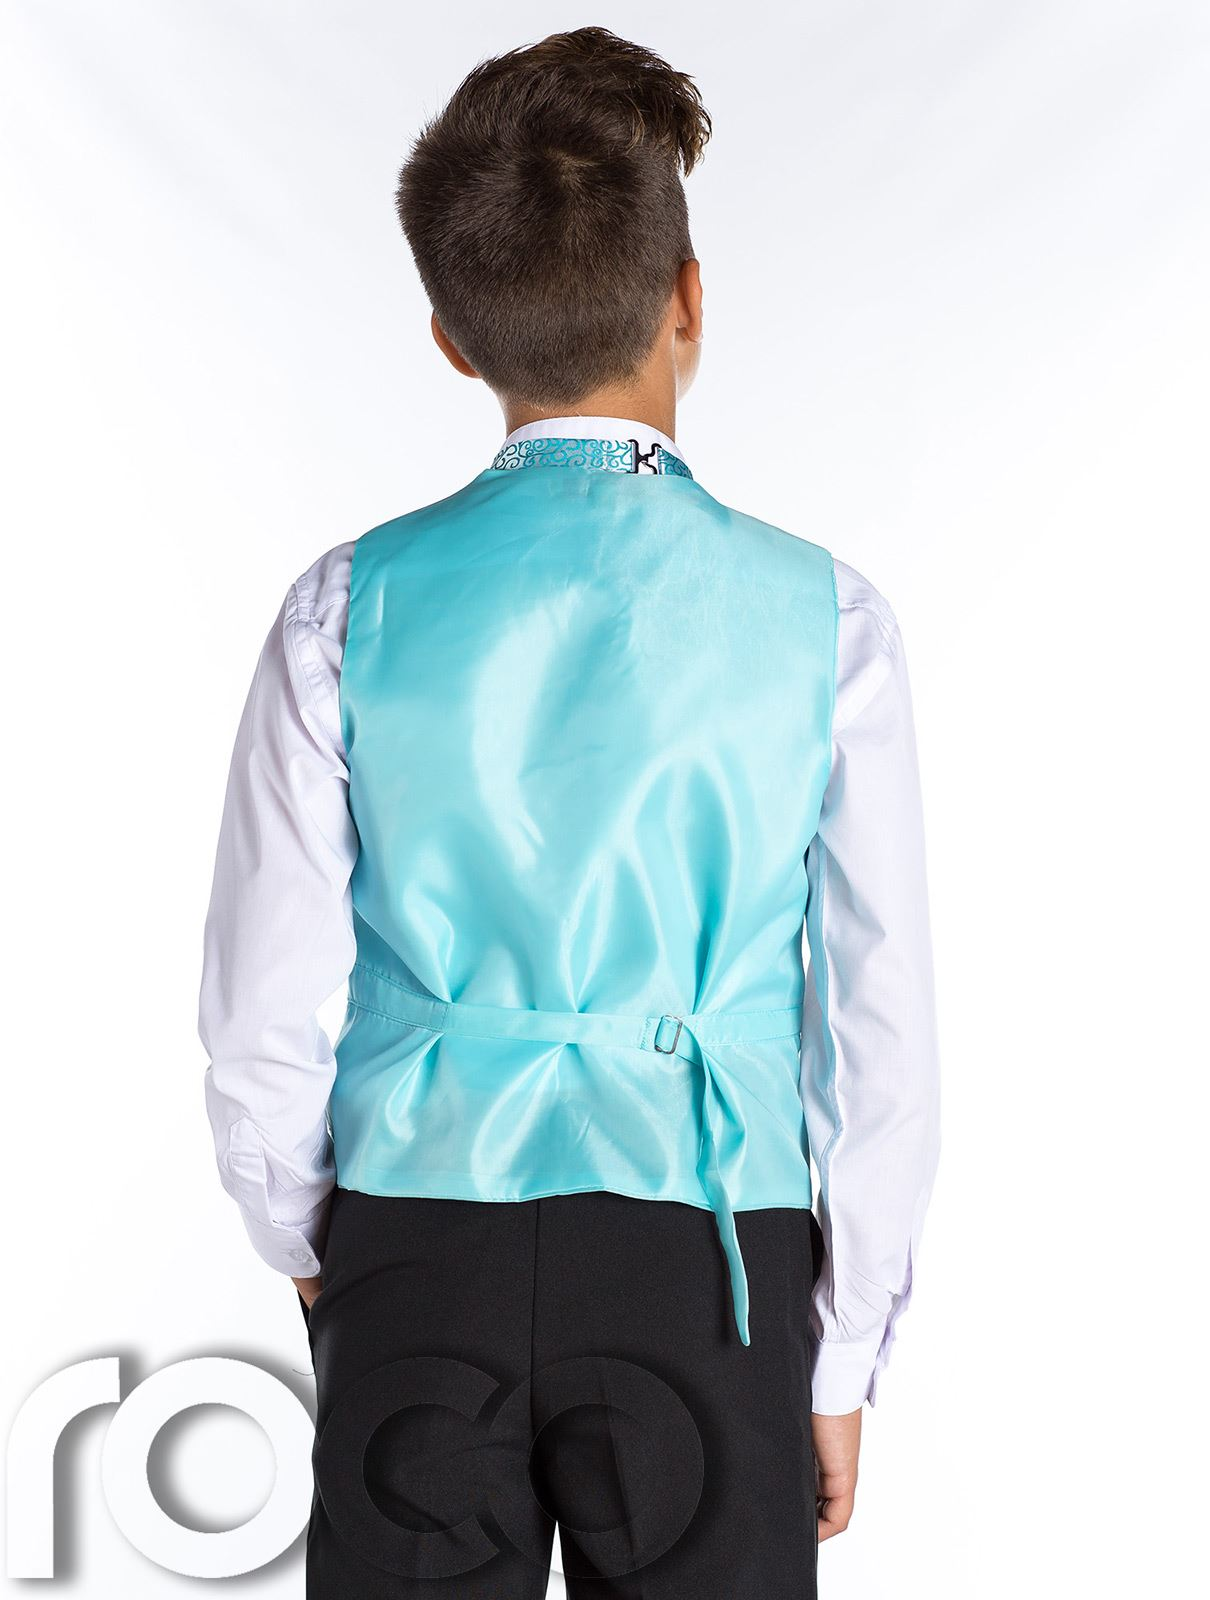 Page Boy Suits, Boys Wedding Suits, Boys Waistcoat Suit, Boys Formal ...